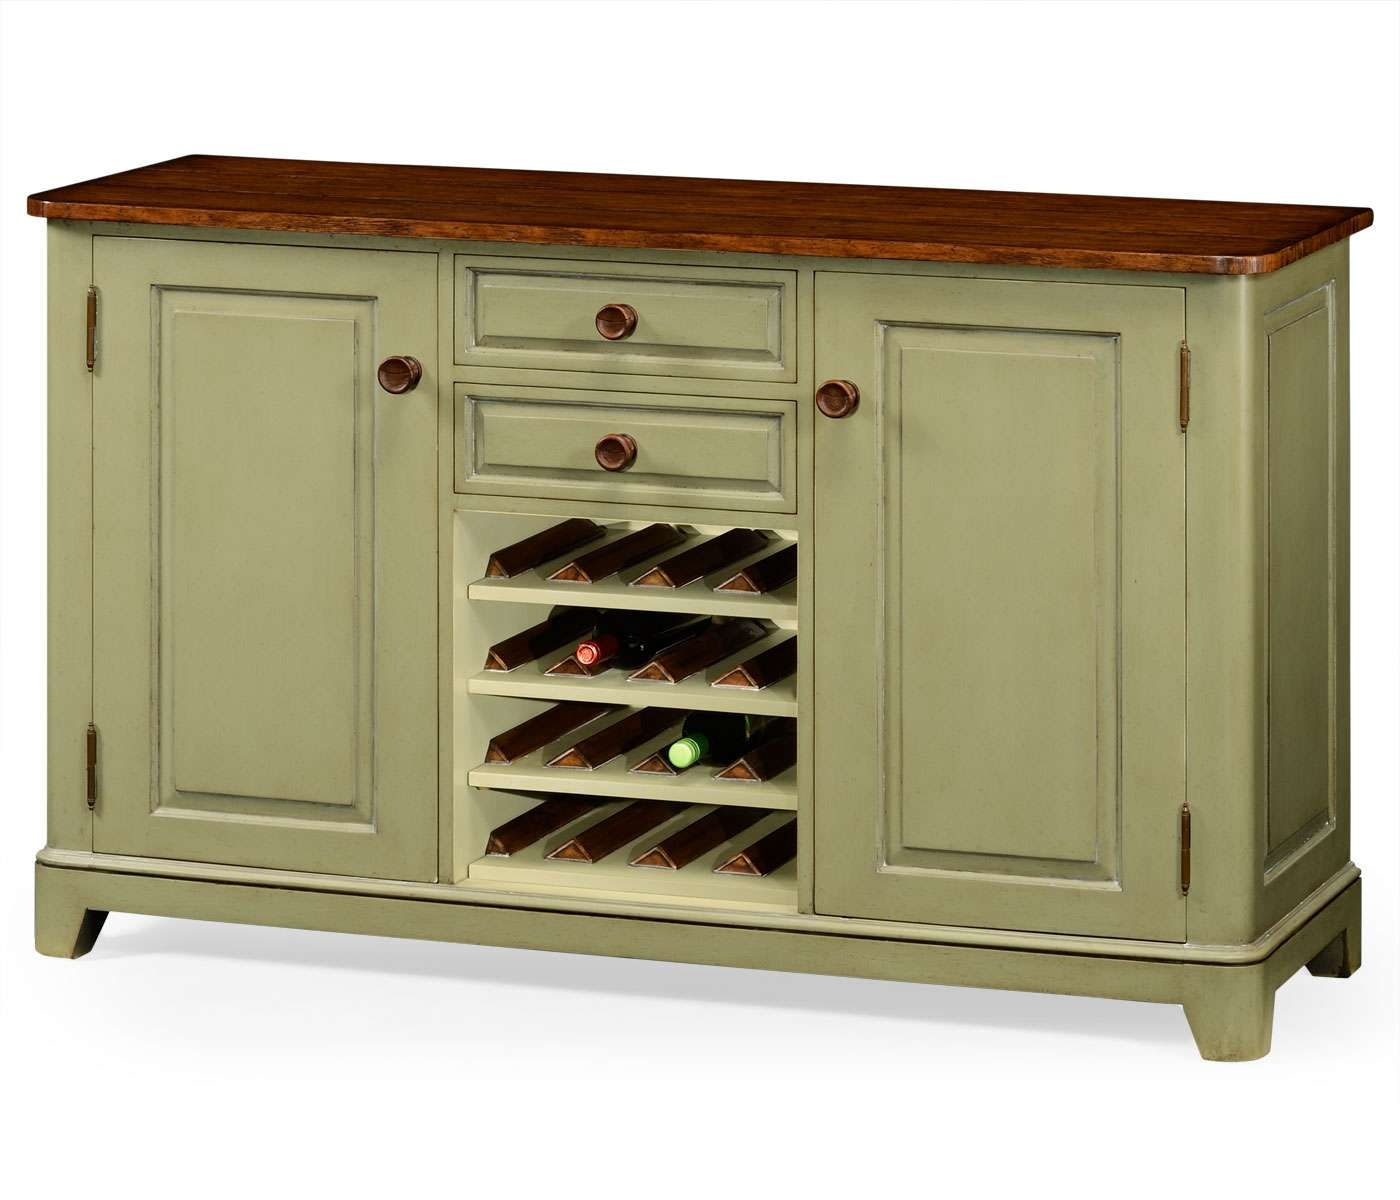 Things To Know About Sideboard With Wine Racks Bonnie Is Good Inside Sideboards With Wine Rack (View 20 of 20)